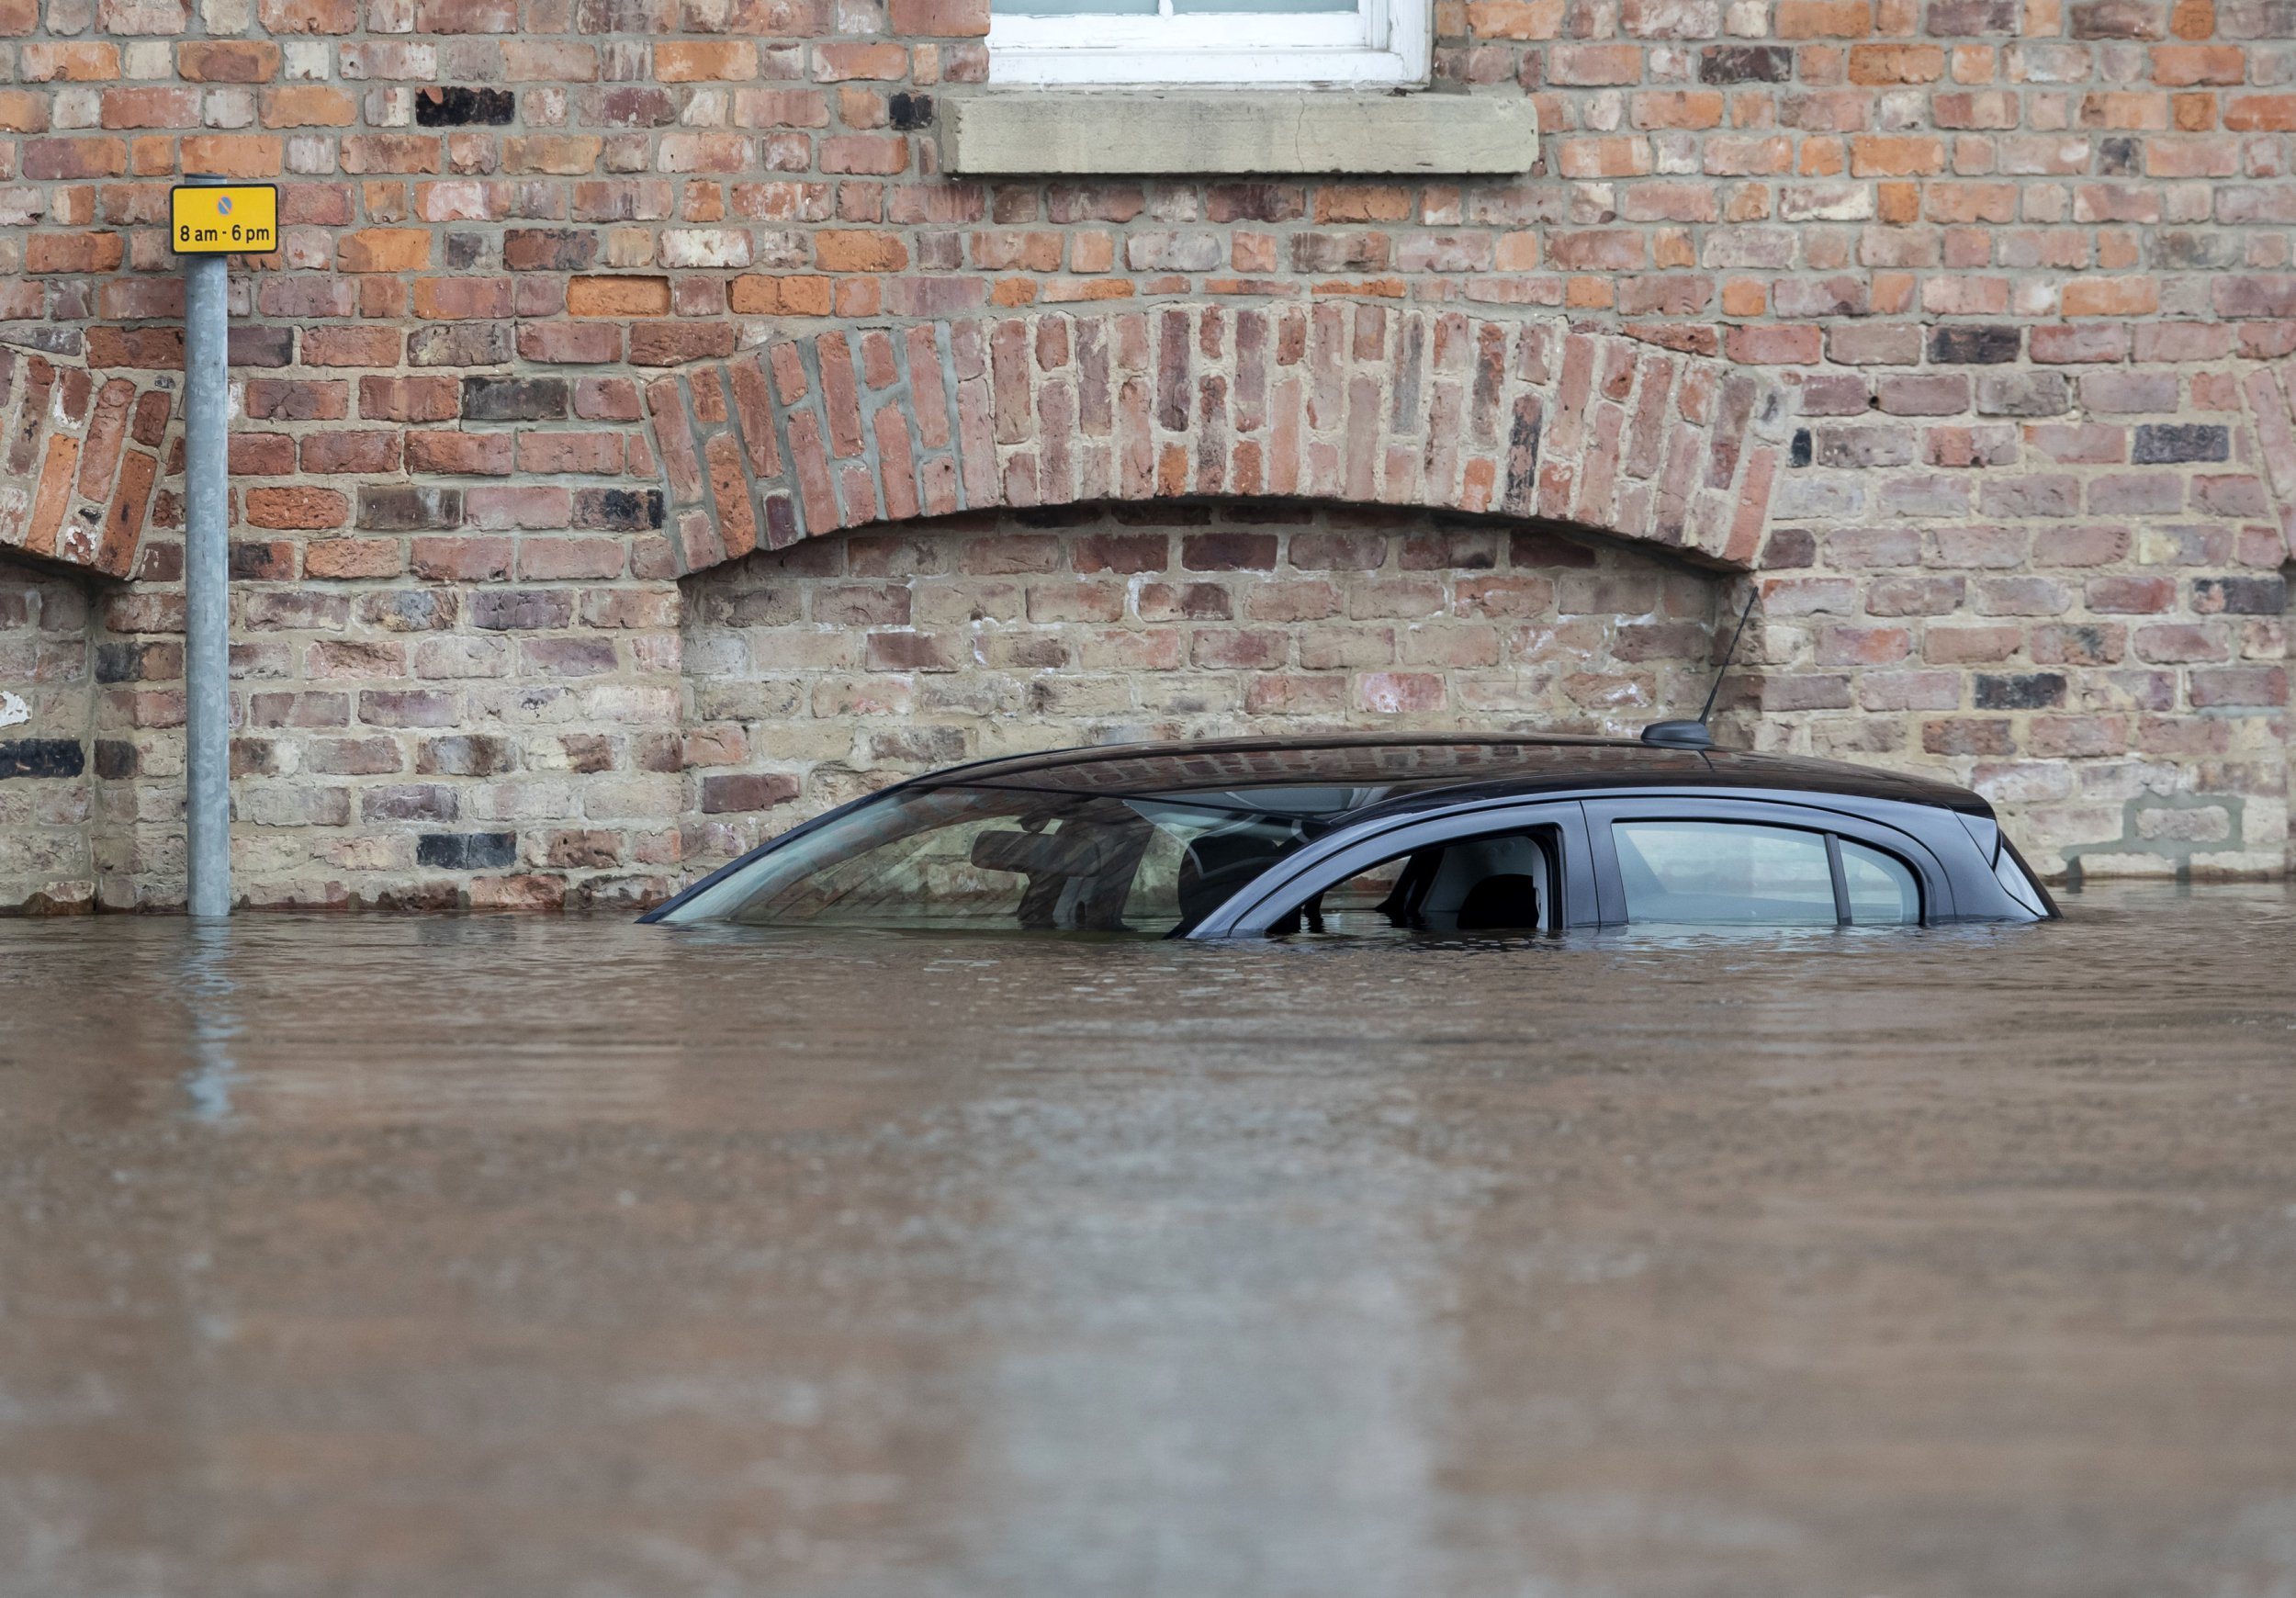 A car is submerged in flood water in York after the River Ouse burst its banks in March 2019